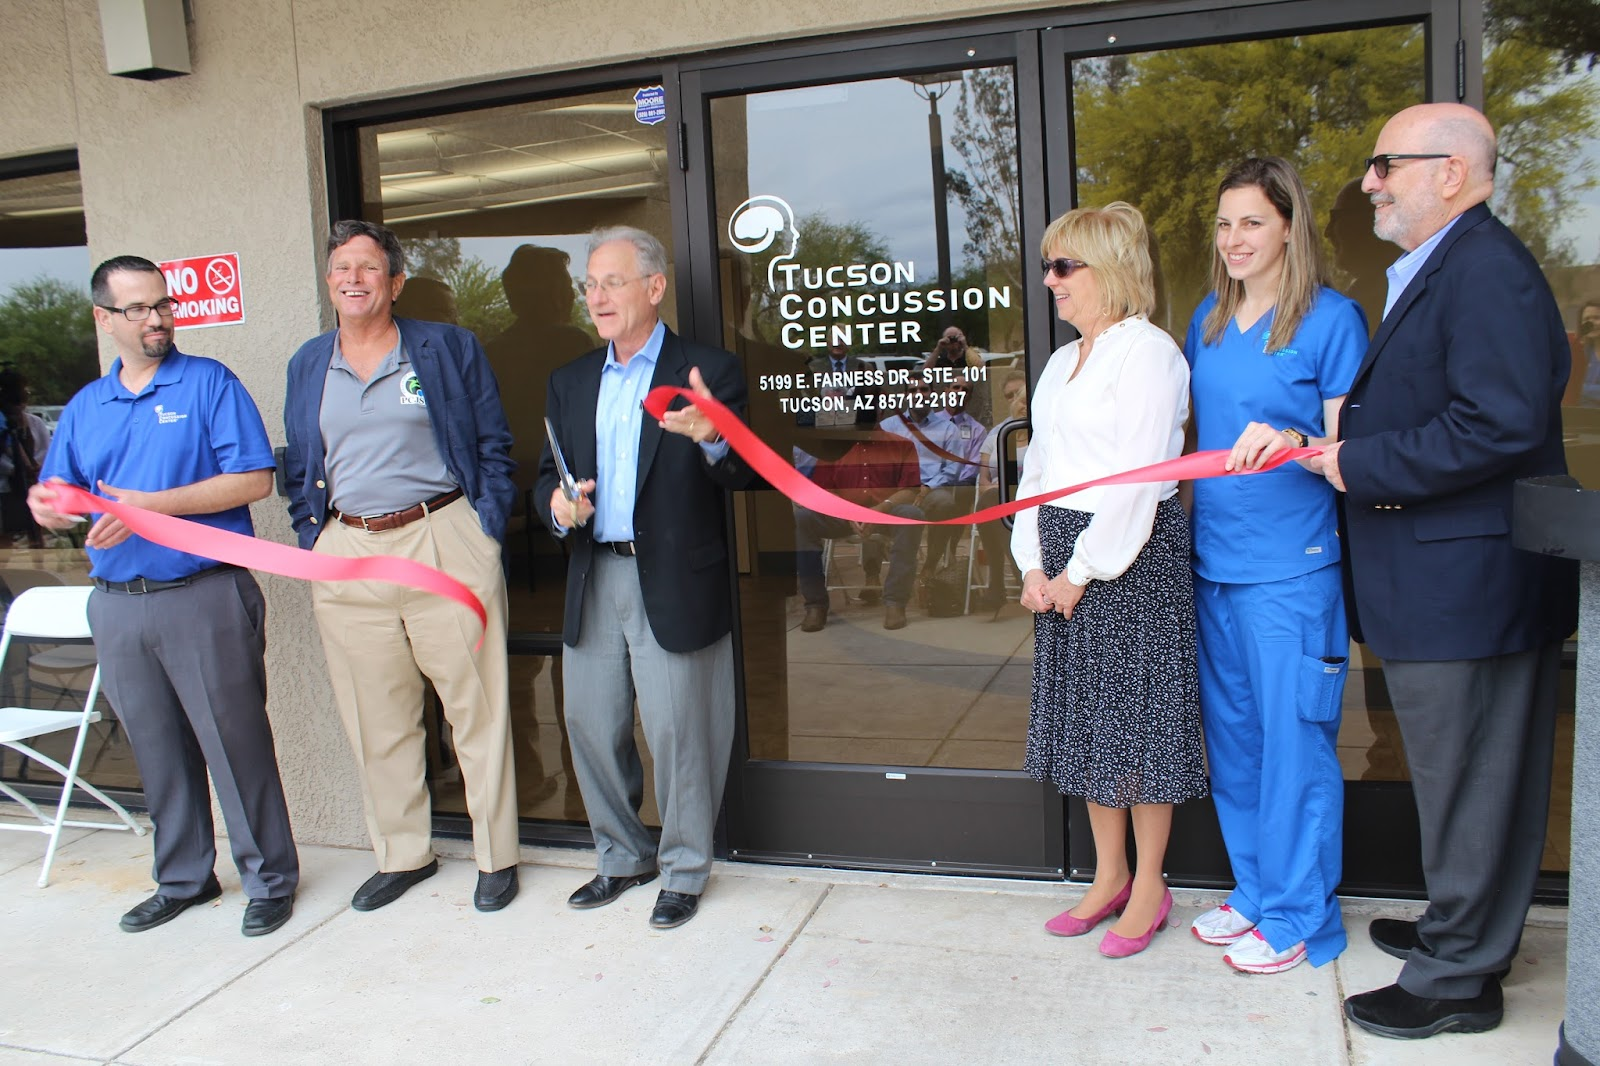 "Congratulations to Tucson Concussion Center located at 5199 E. Farness Drive #101, on their grand opening!   The Tucson Concussion Center's ""Under One Roof"" platform is the first of its kind in Southern Arizona addressing the unmet need for efficient multidisciplinary assessment, diagnosis and comprehensive treatment of head injuries. TCC's programs emphasize community awareness, demographic specific prevention, education and state of the art baseline tests and assessment."